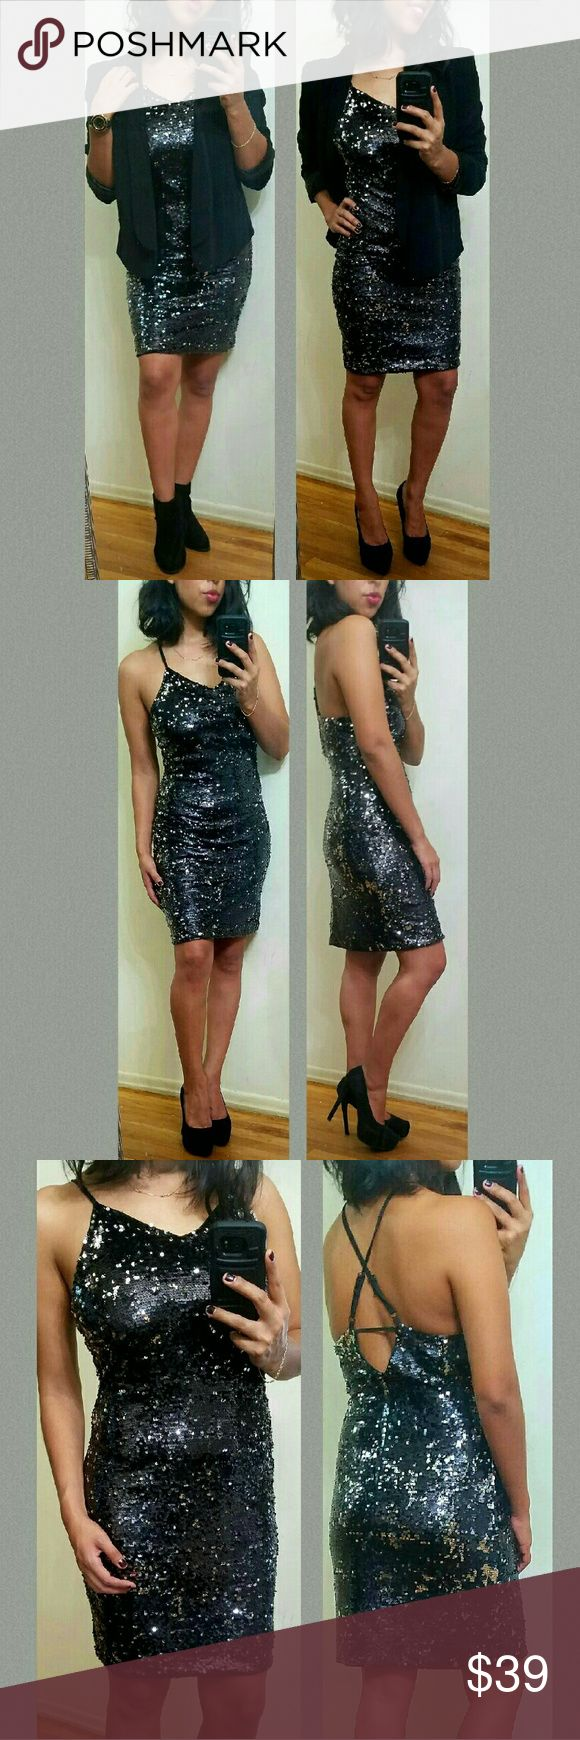 🎁FLASH SALE🎁BLACK SILVER SEQUIN DRESS Ladies get ready for the holidays in this super sweet yet sassy Silver and Black sequins dress.Features all over sequins (which don't poke through the dress!) Criss-cross back. Adjustable straps with hidden back zipper. V neckline. Lined. It's a stunner! Add a blazer or coat to stay warm**not Lulu's, it's similar.   •Fabric Content: both shell&lining are 100%Polyester  •Sizes available S M l •MODELING SIZE MEDIUM •  ●•••》PRICE IS FIRM UNLESS…